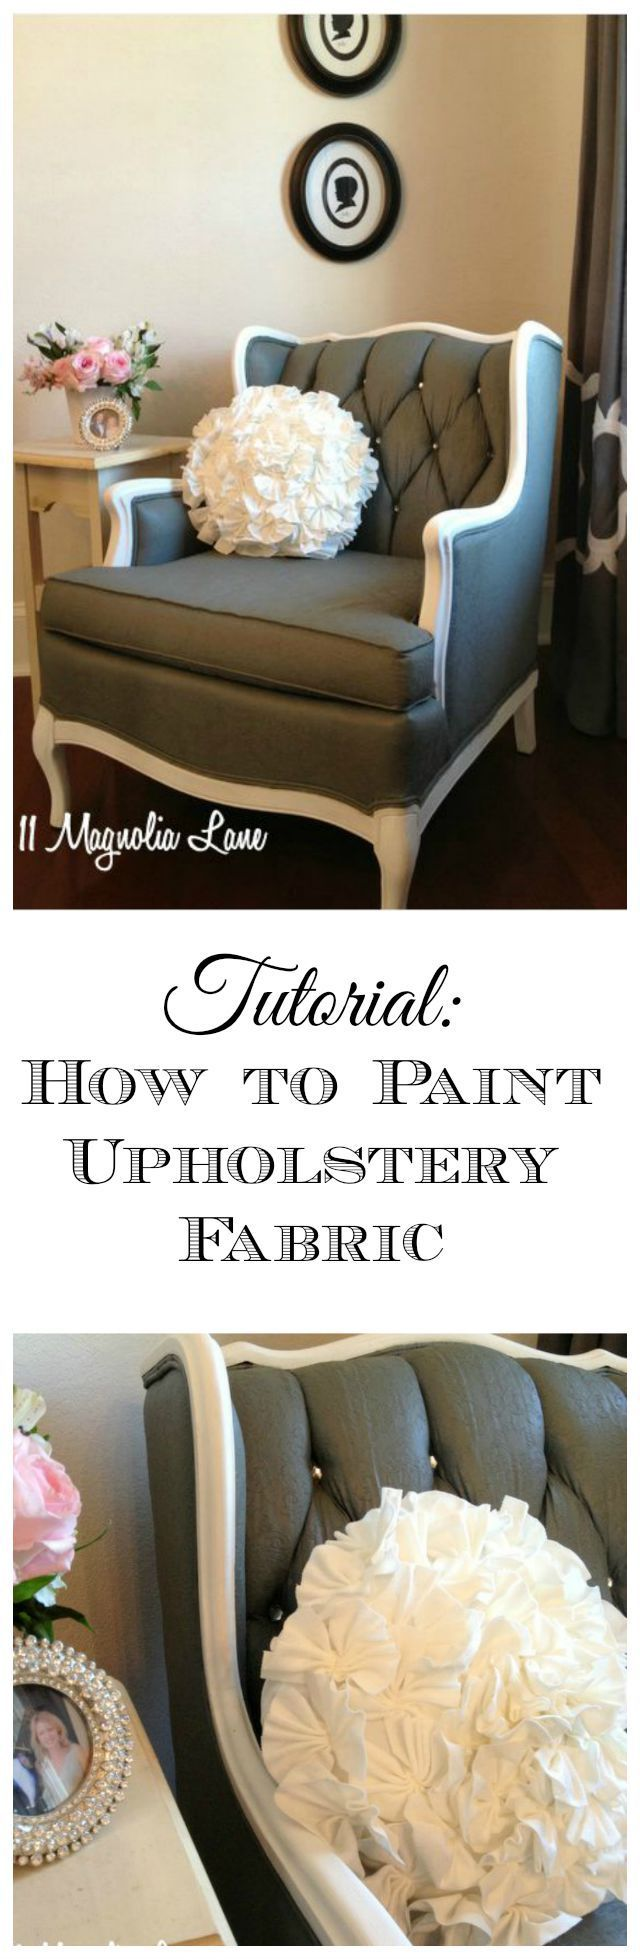 Upholstery fabric for chairs - Tutorial How To Paint Upholstery Fabric And Completely Transform A Chair